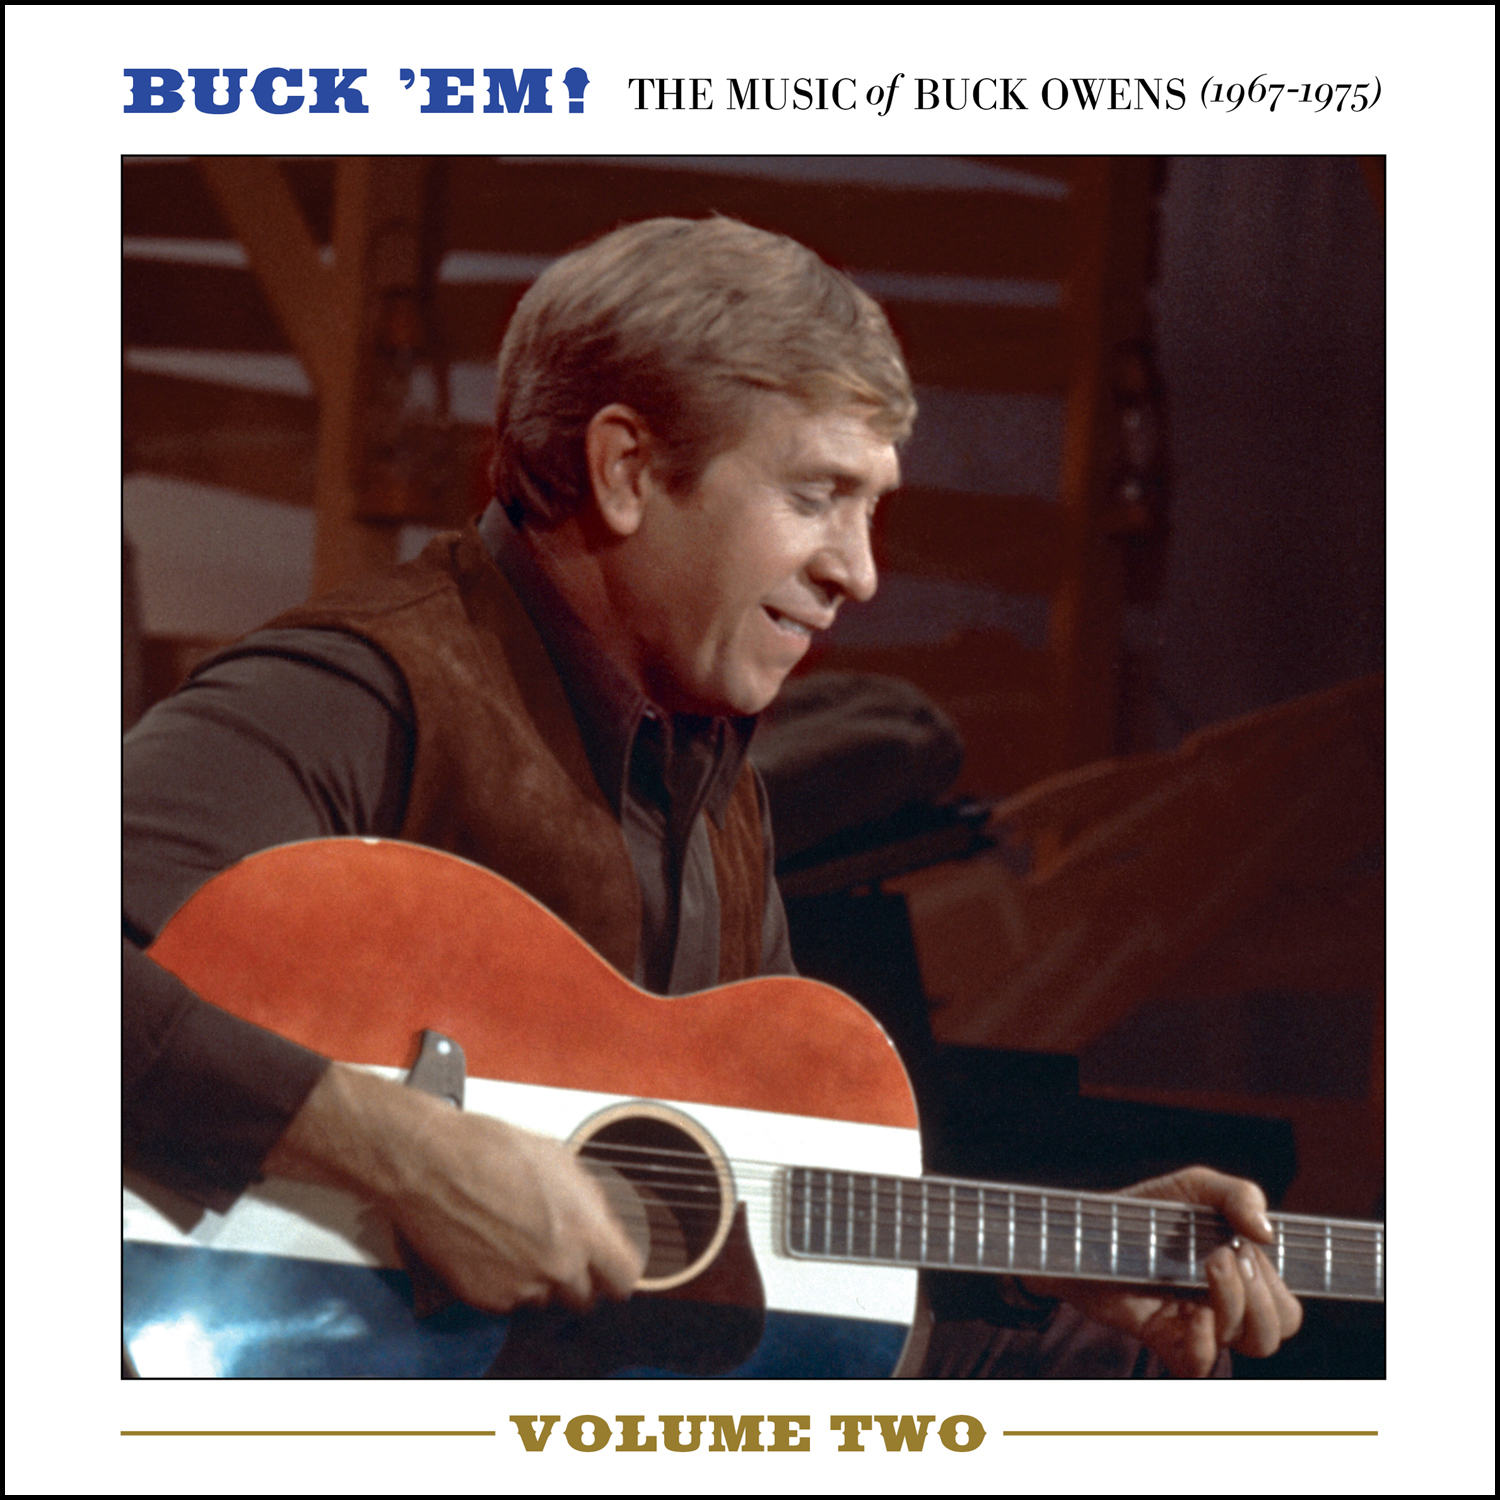 Buck Ownes -  Buck 'Em! Volume Two: The Music Of Buck Owens (1967-1975)  Release Date: November 15, 2015 Label: Omnivore Recordings  SERVICE: Restoration,Mastering NUMBER OF DISCS: 2 GENRE: Country FORMAT: CD   TRAILER